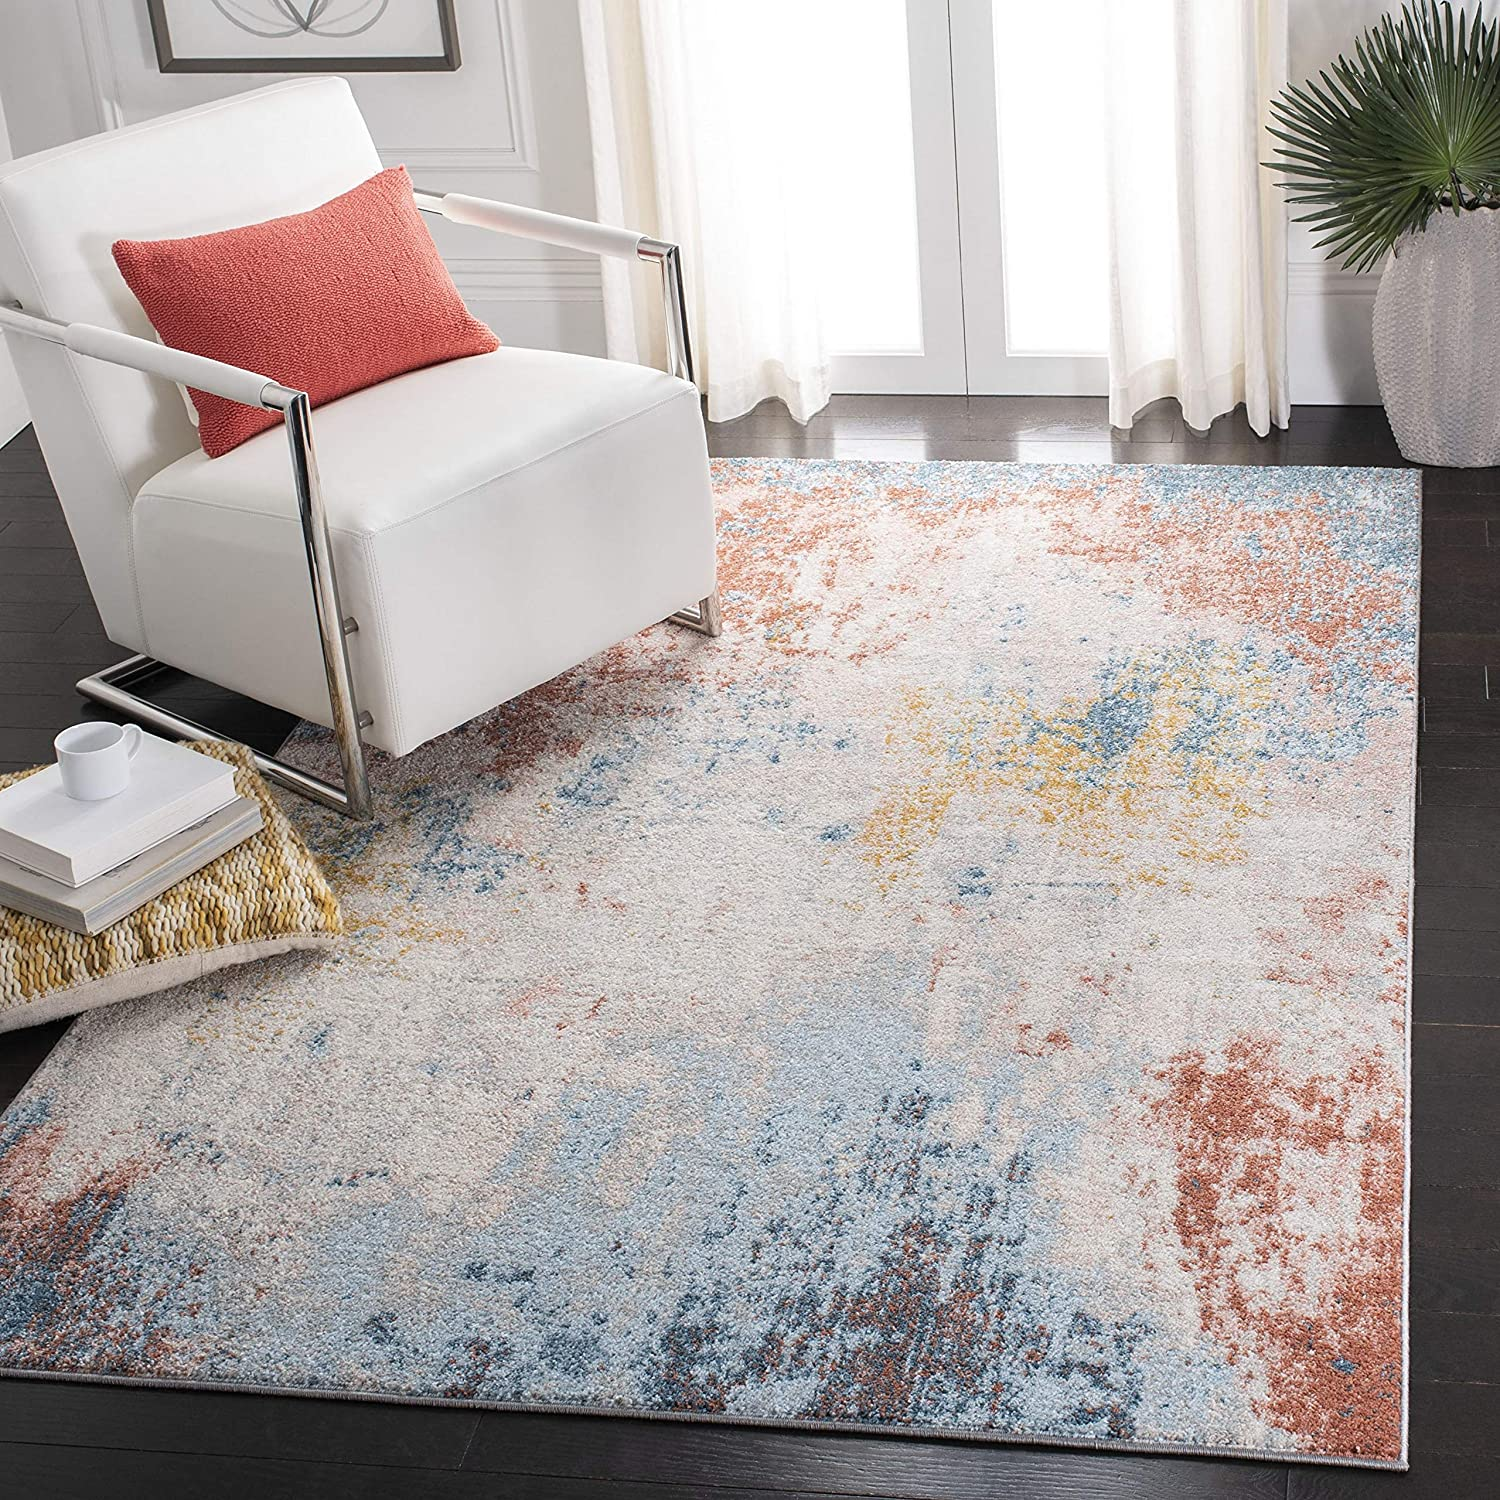 Safavieh Tulum Collection Same day Max 86% OFF shipping TUL207A S Modern Non-Shedding Abstract